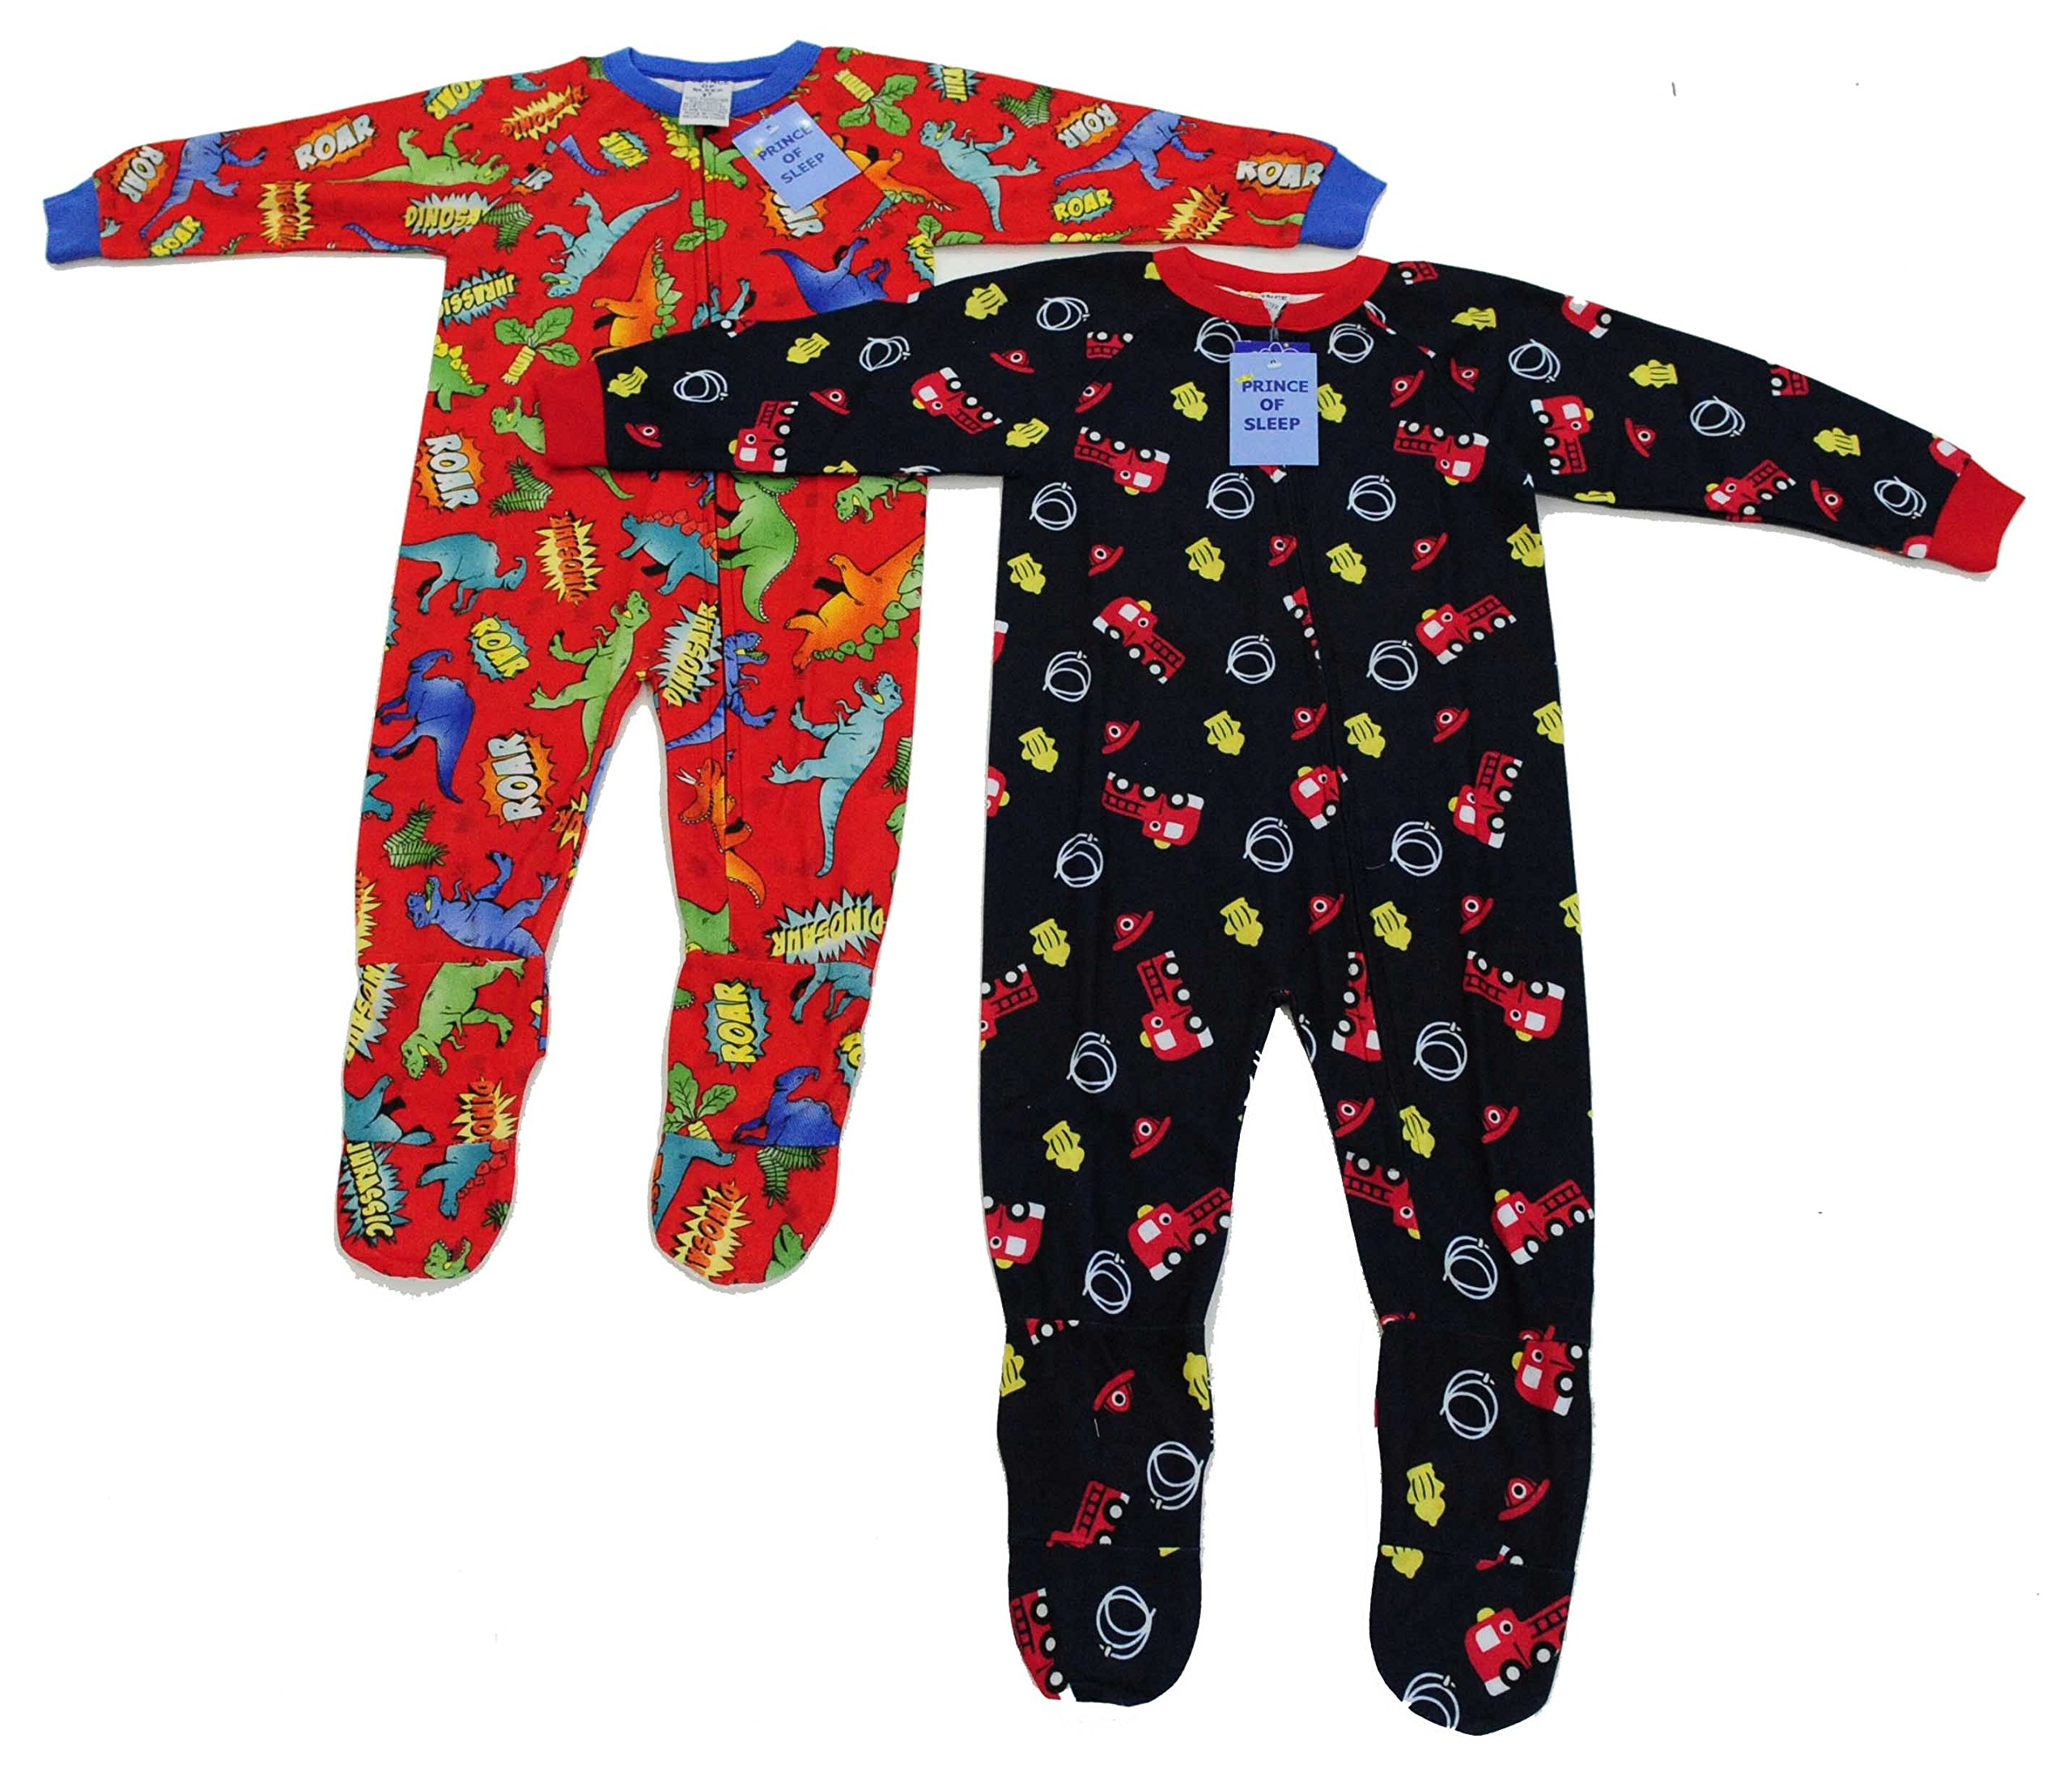 Prince of Sleep 95558A-7 Footed Pajamas/Blanket Sleepers,Fire Truck and Dinosaurs,Boys' 7